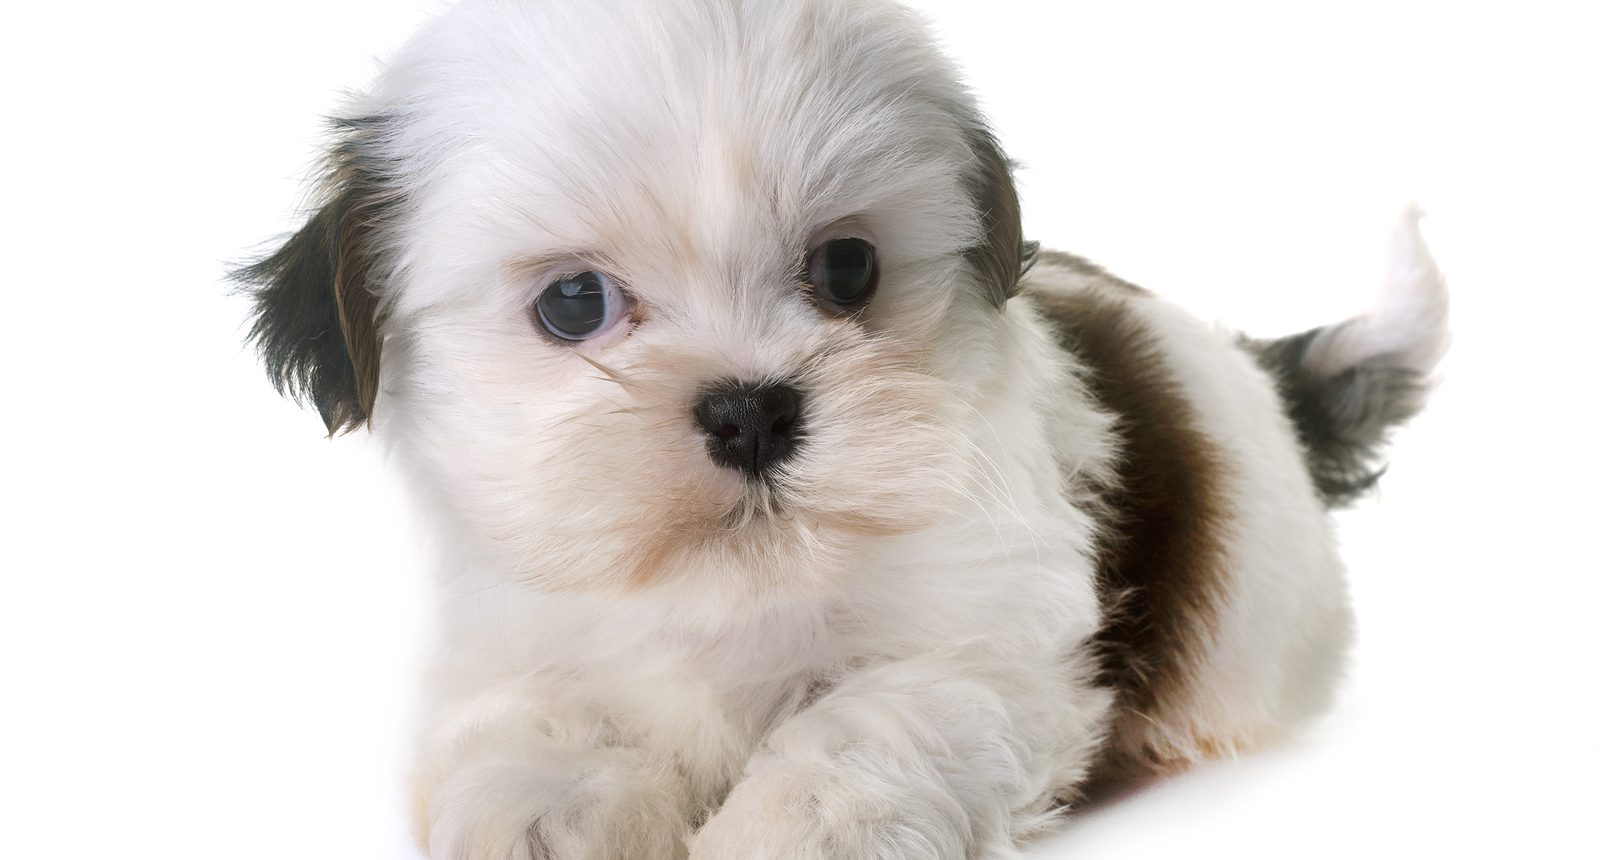 Shih Tzu Puppies For Sale Singapore Puppies Sale In Singapore Petshop 700 Facebook Reviews